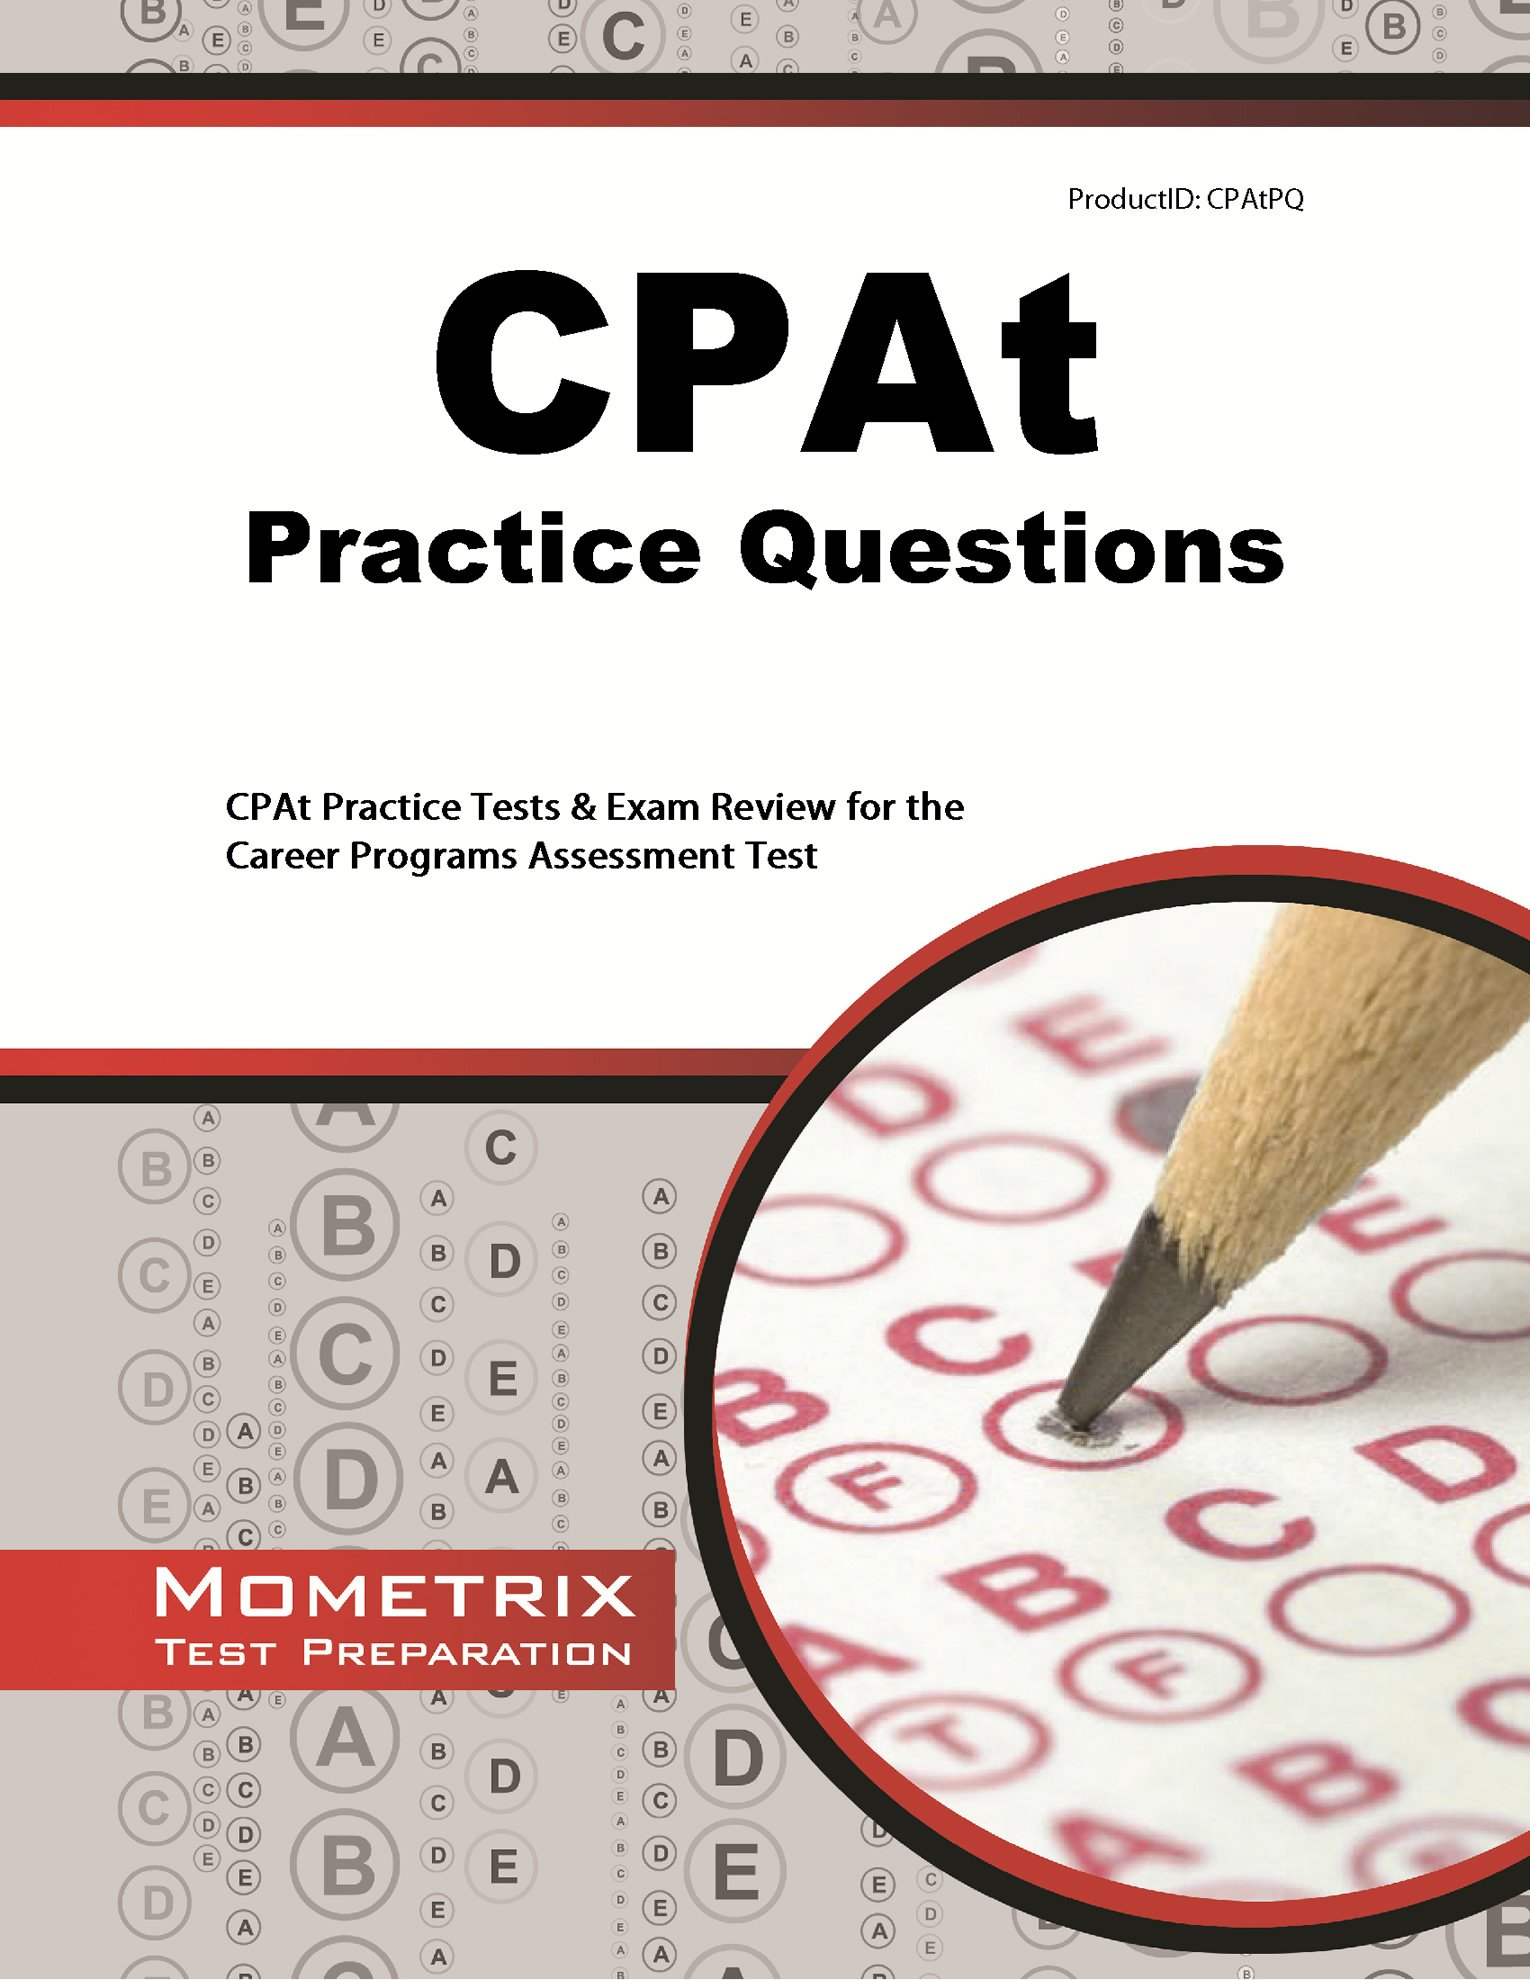 cpat practice questions practice tests exam review for the cpat practice questions practice tests exam review for the career programs assessment test 9781614026167 amazon com books